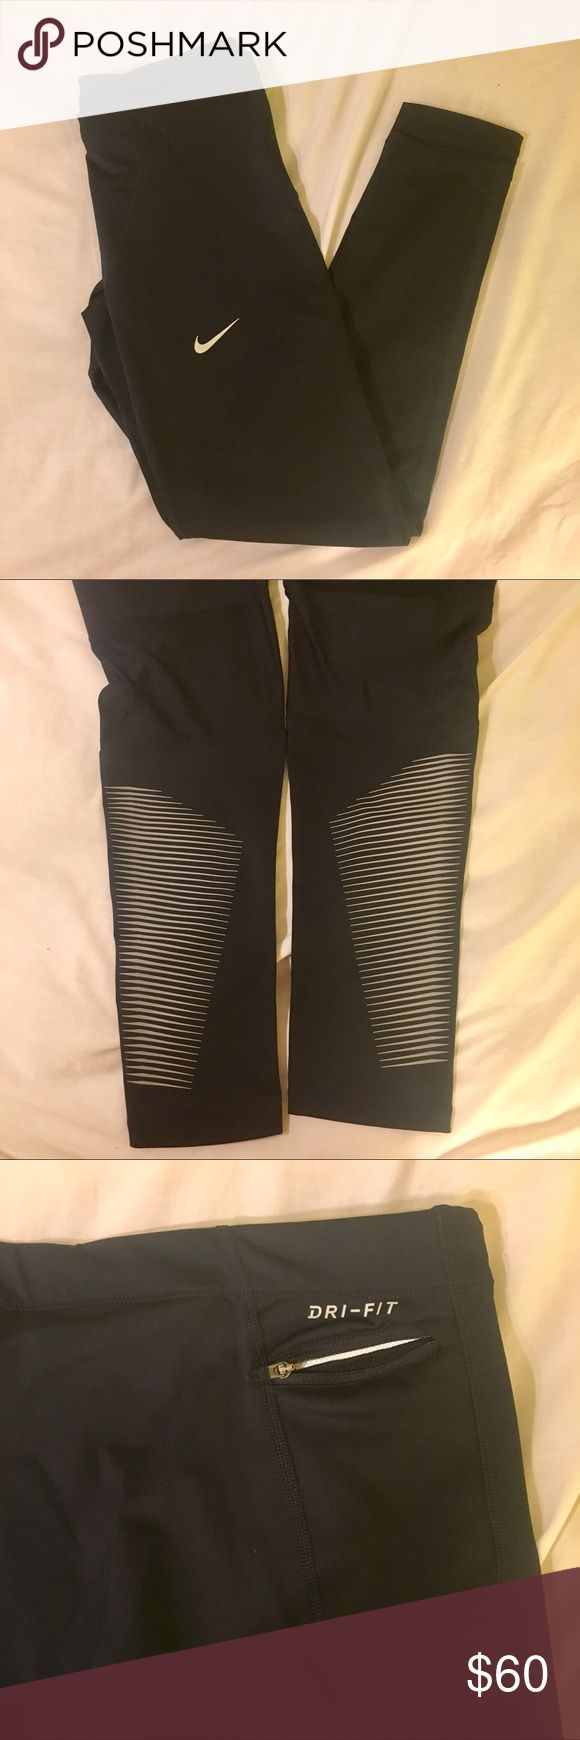 NIKE black leggings Black Nike leggings in amazing condition!! Adjustable waist, pocket with zipper on the back, gray detailing on the bottom leg area, mesh-like fabric behind the knee. ASK QUESTIONS😊 Nike Pants Leggings